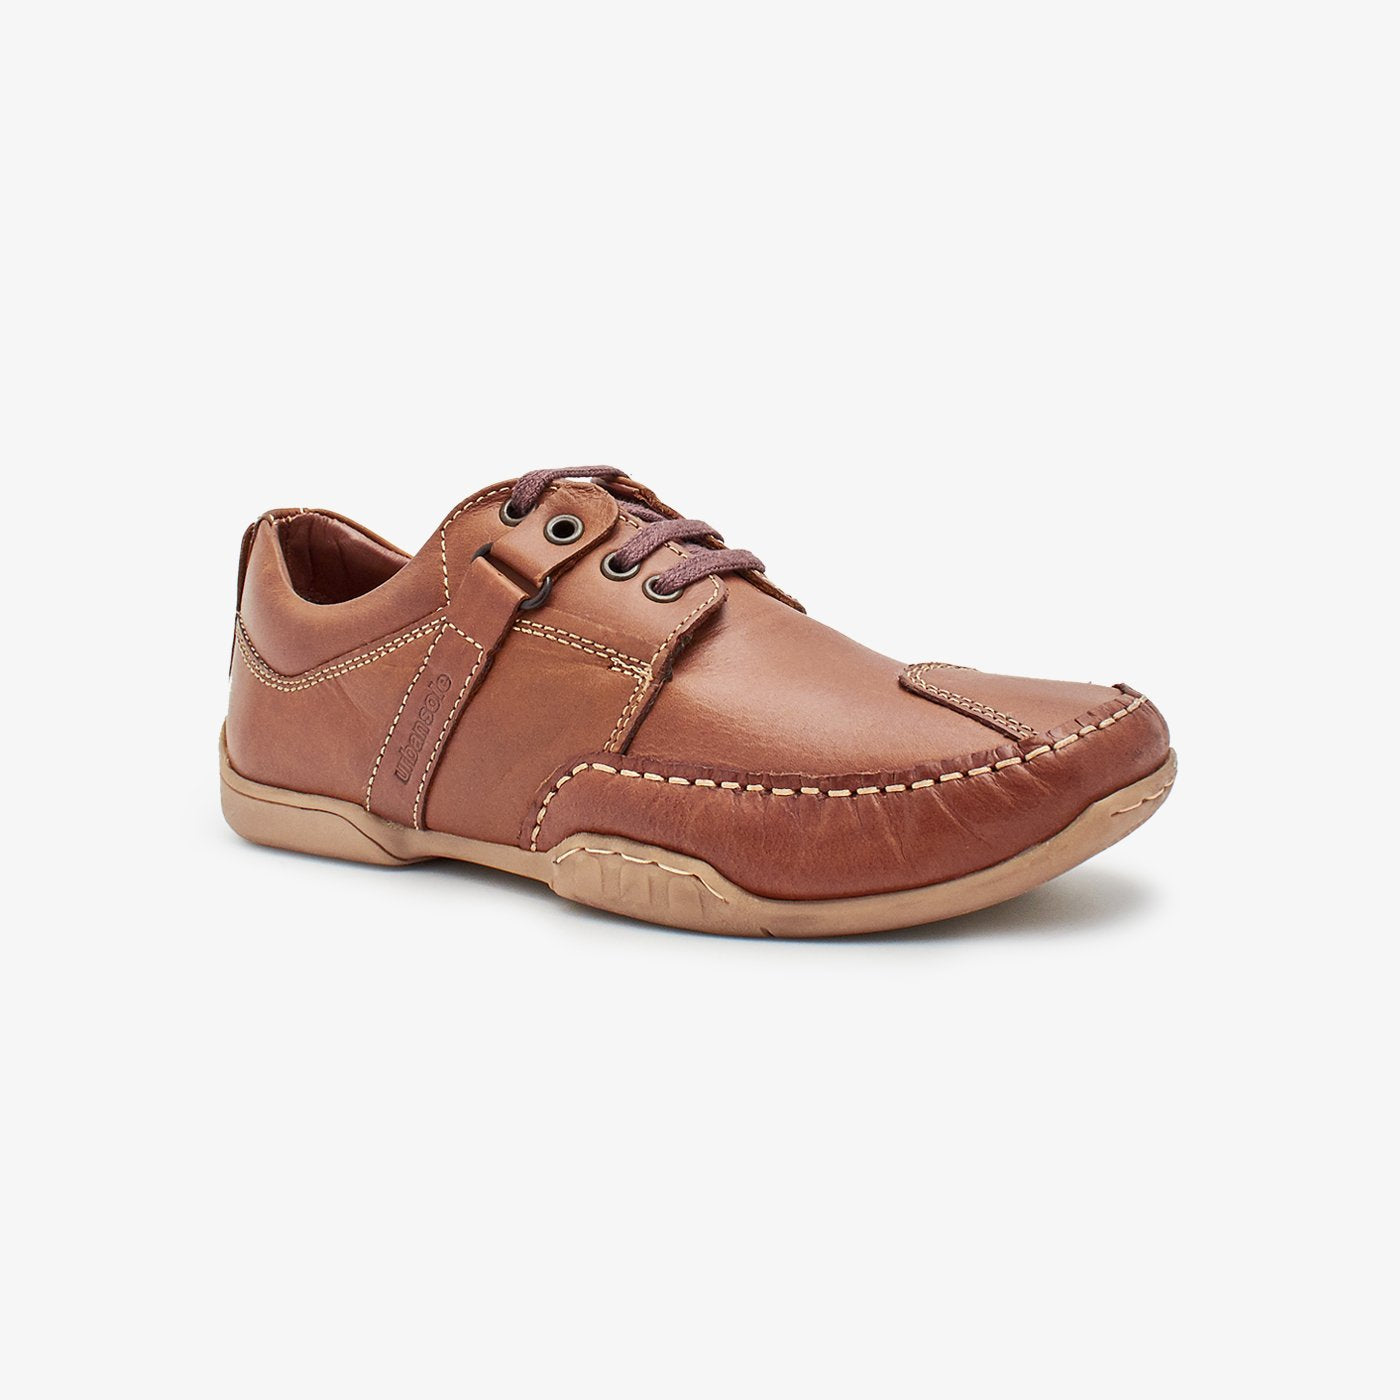 Everyday Shoes for Men